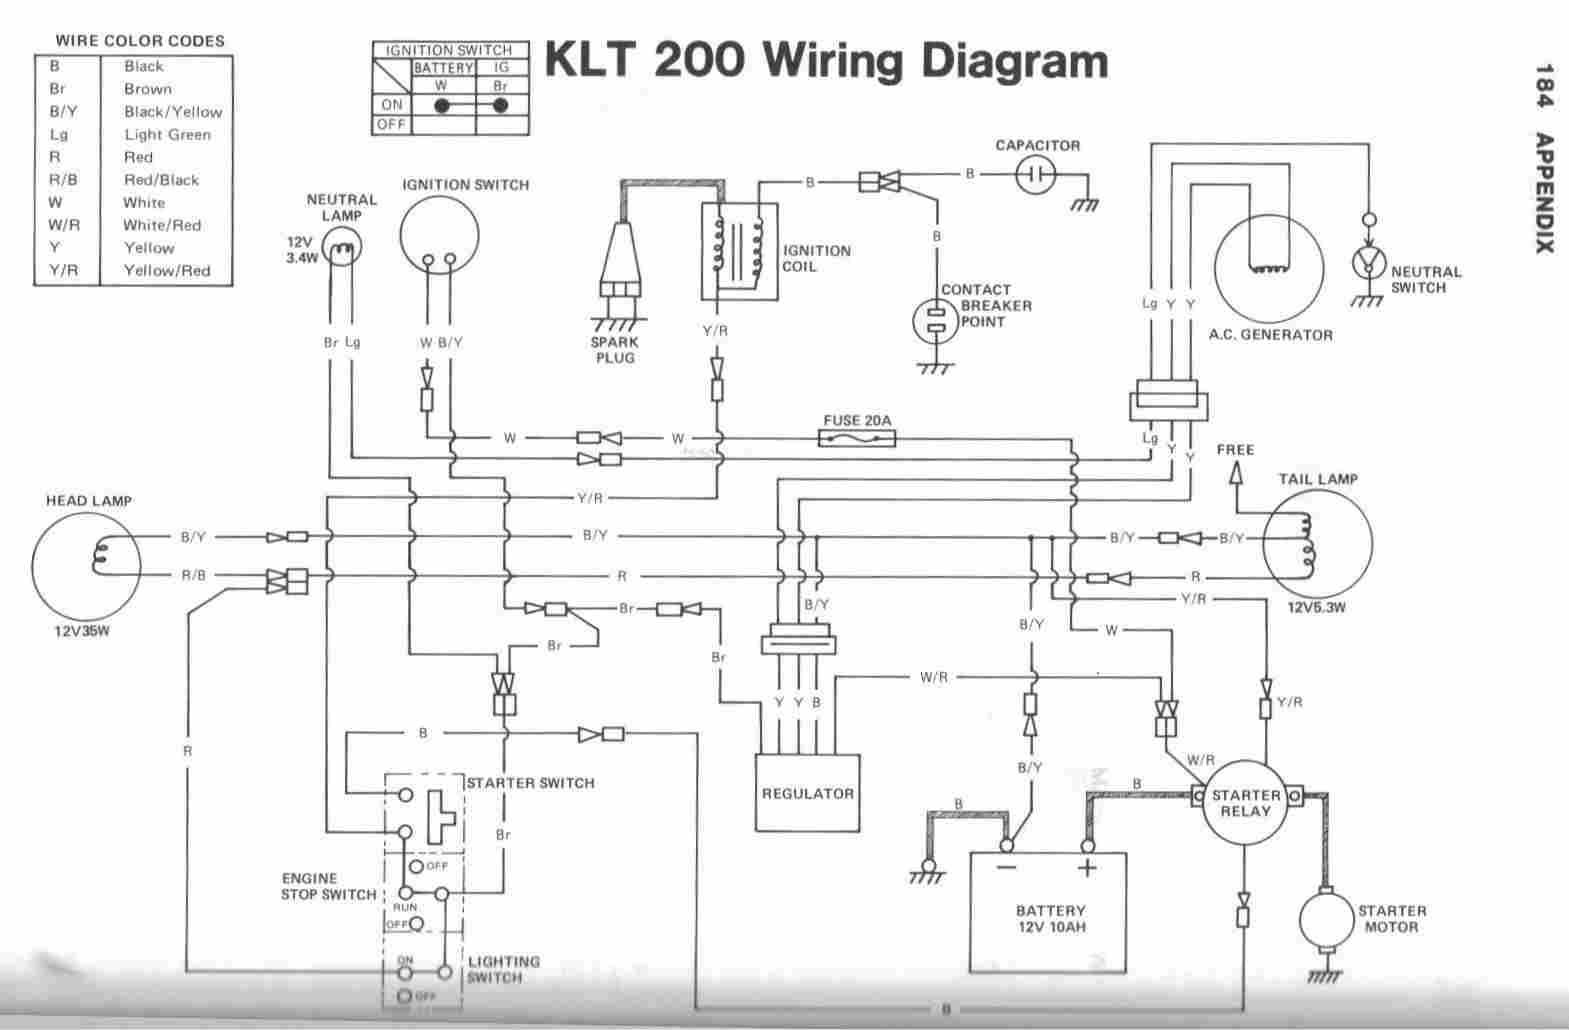 2869034594ce054a636782e5c44b61b4 wiring diagrams \u2022 woorishop co Basic Electrical Wiring Diagrams at soozxer.org